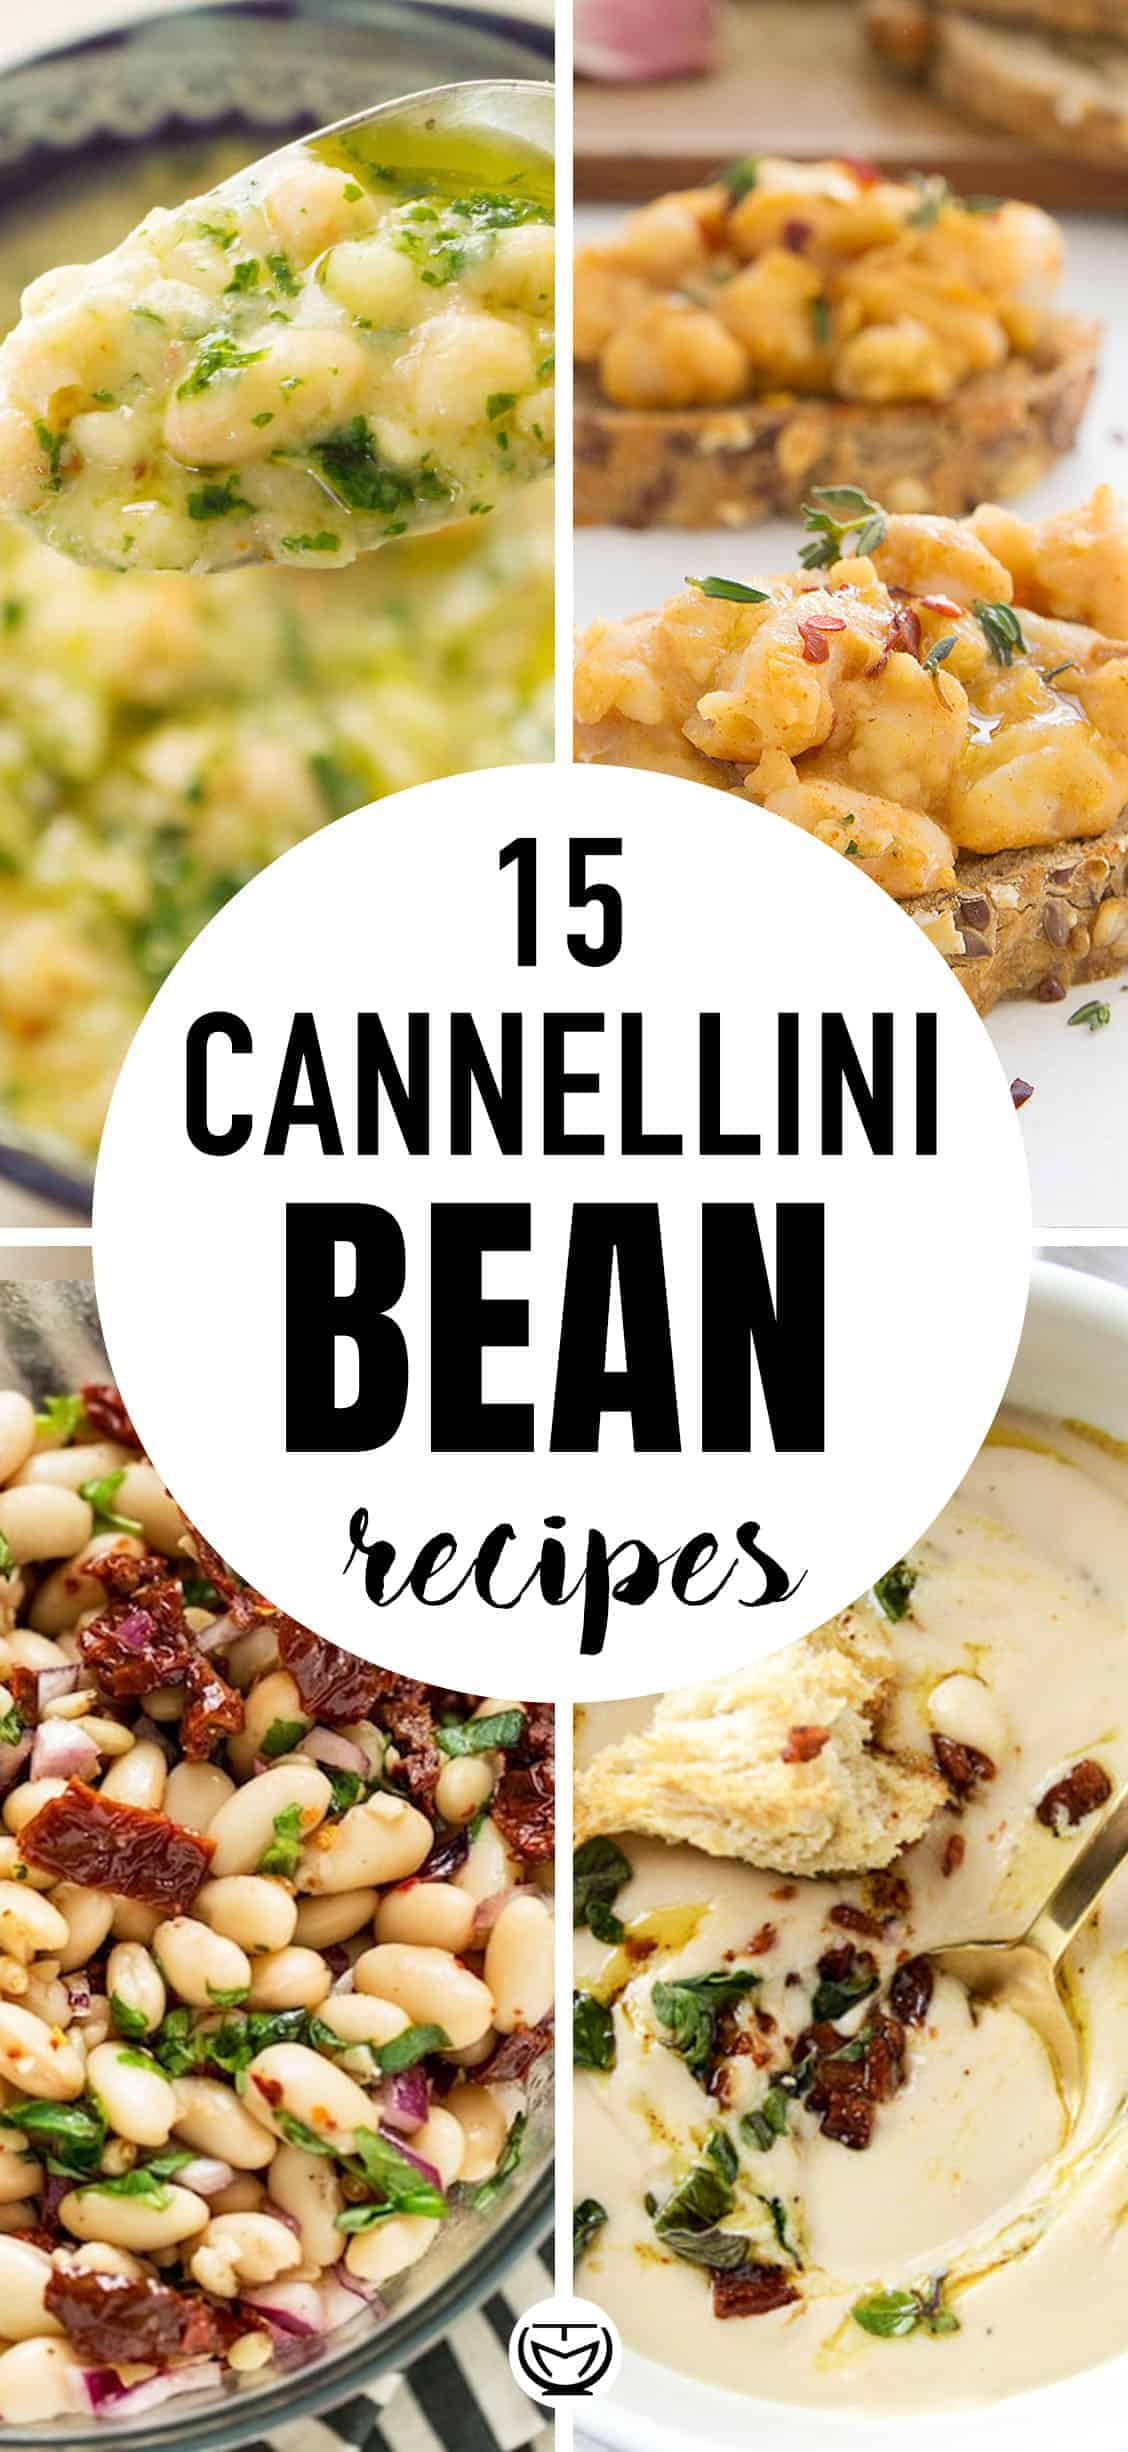 15 Delicious cannellini bean recipes you will love! #cannellinibeanrecipes #cannellinirecipes #cannellinisoups #whitebeansoups